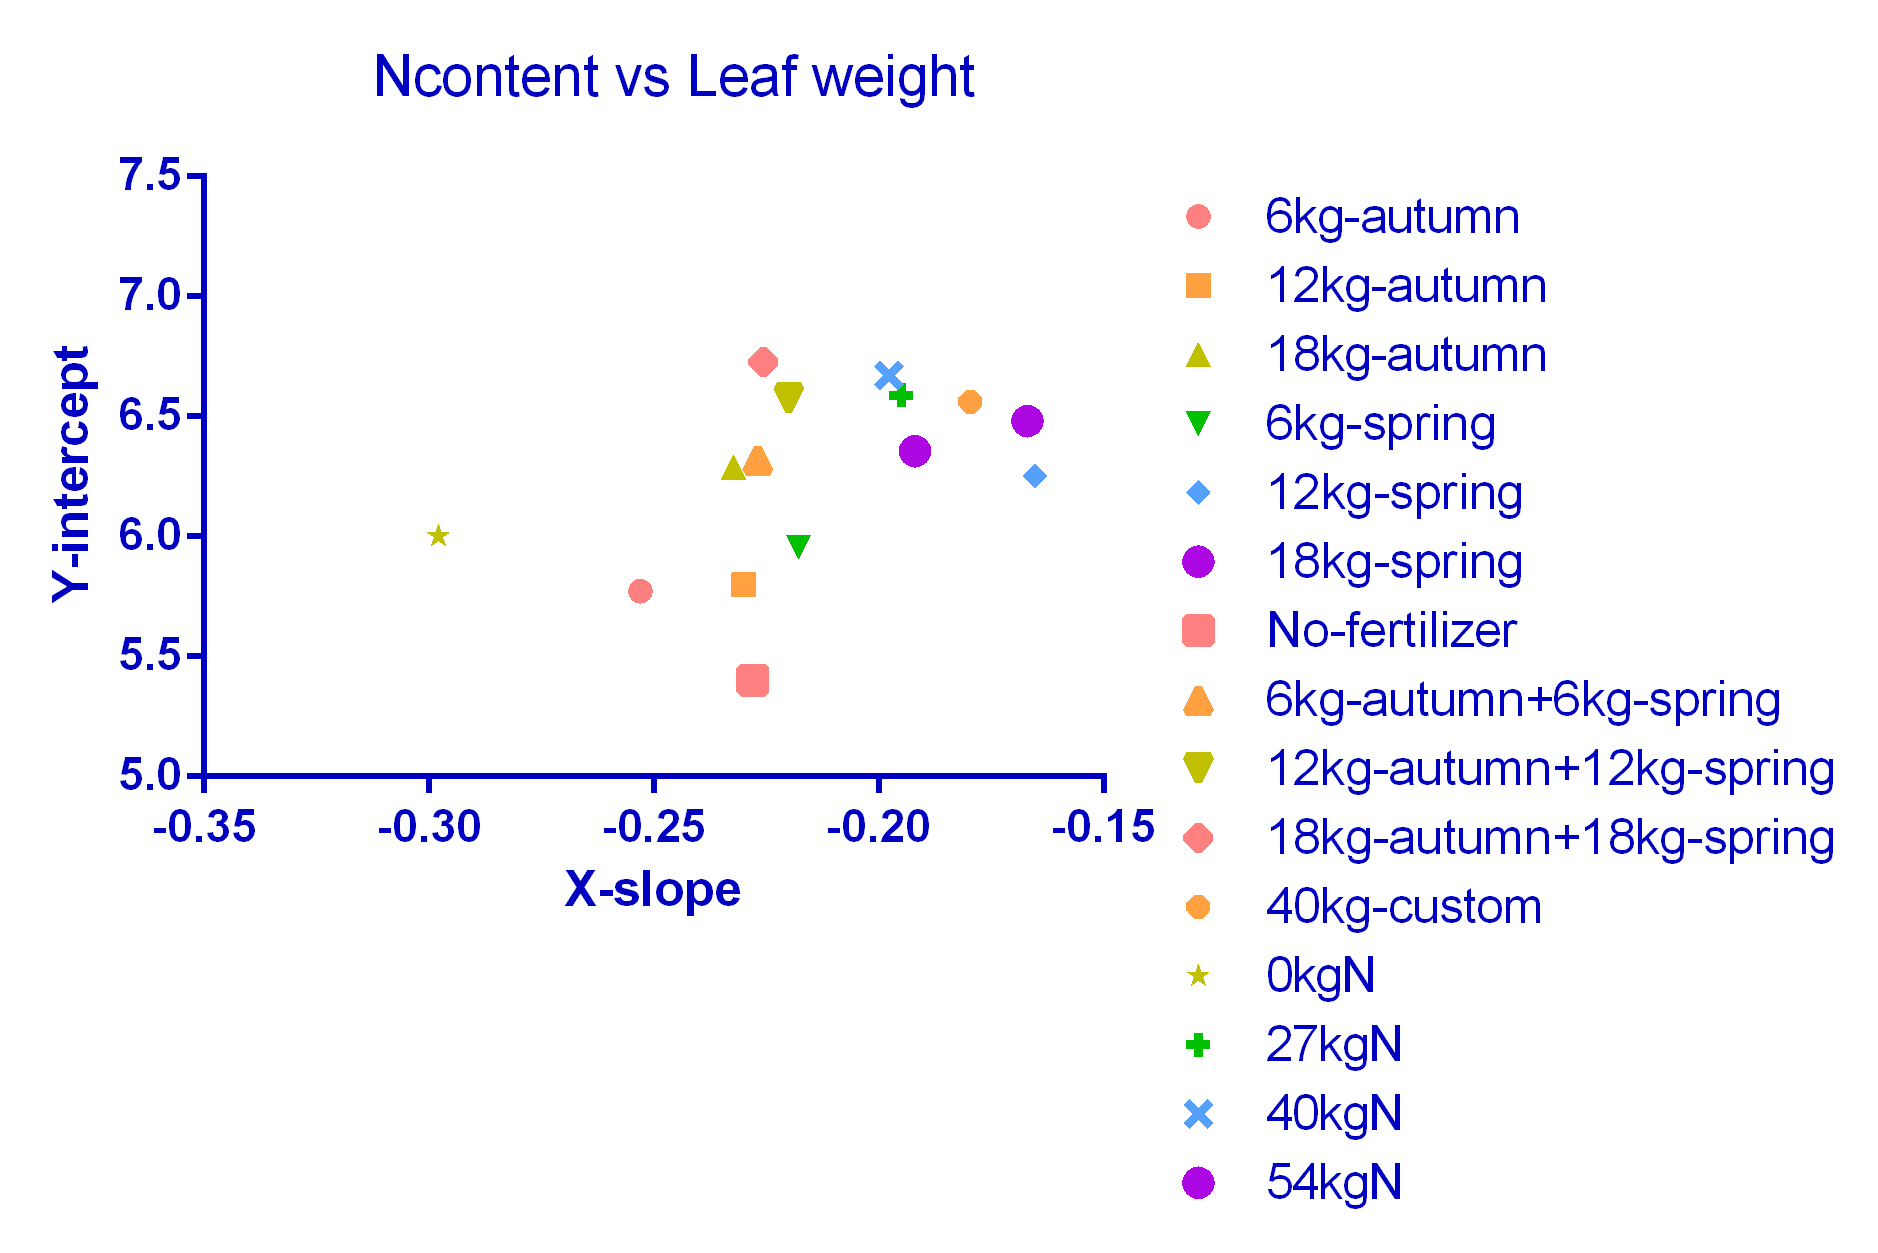 Ncontent vs Lweight